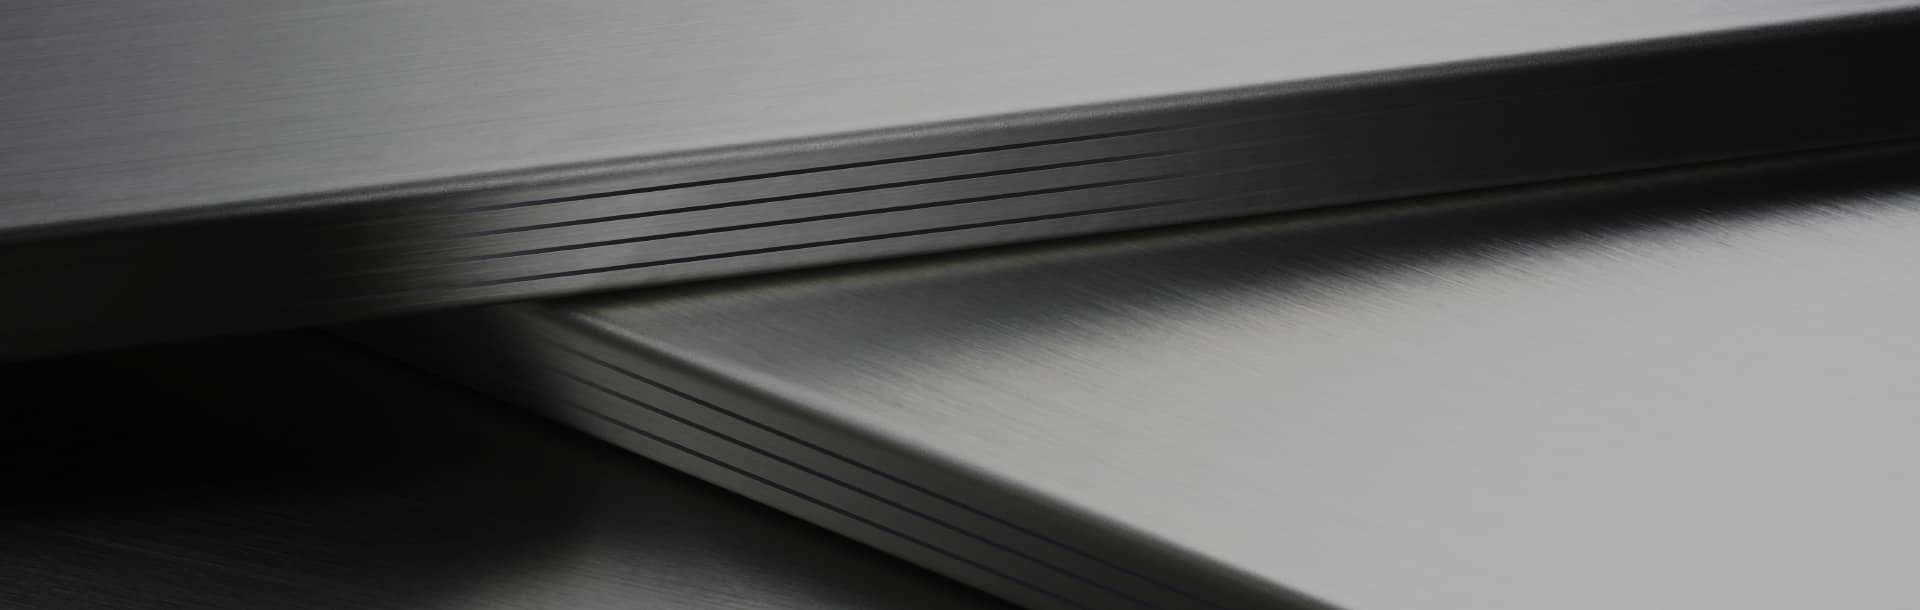 Sheet Metal Material Selection Material Type And Its Applications